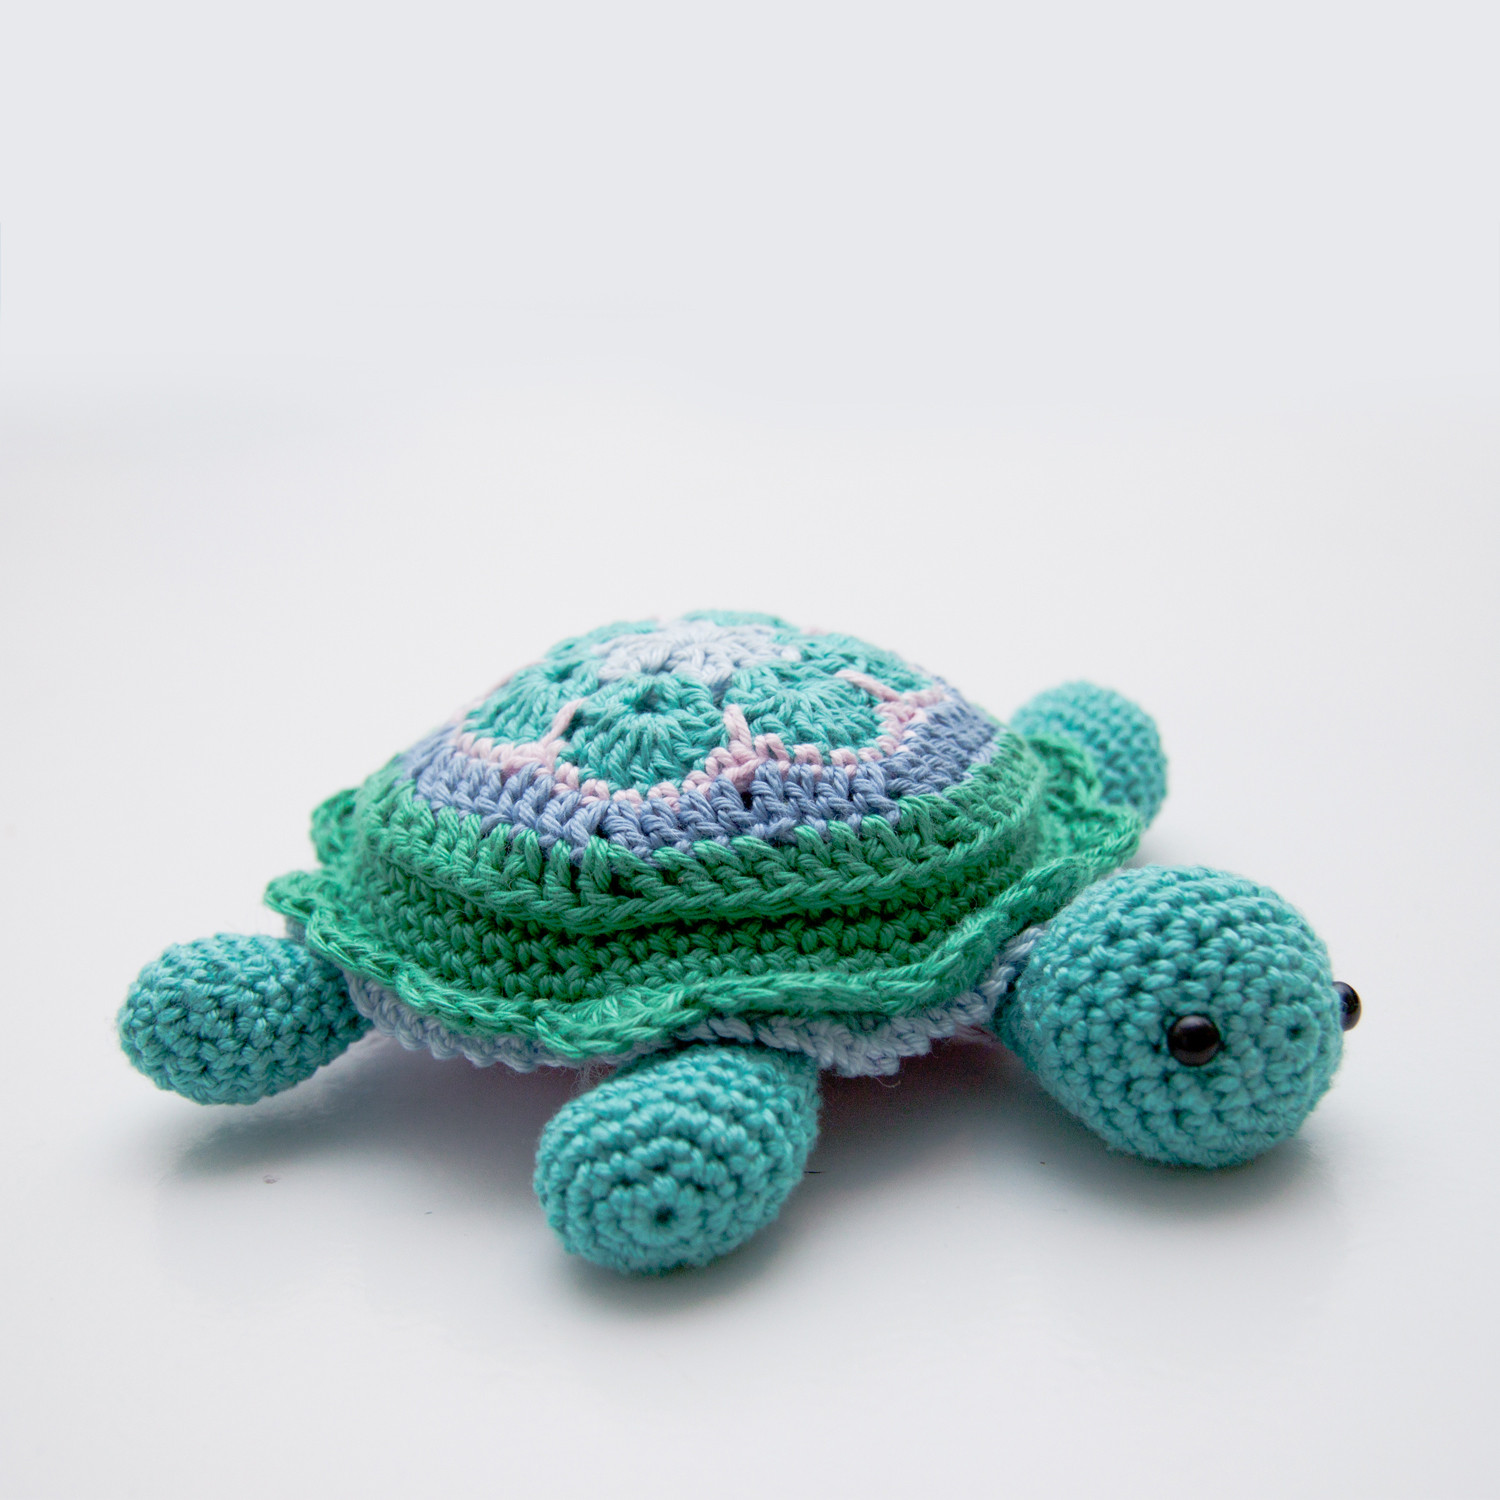 Beautiful Crochet African Flower Pincushion Free Pattern Tina Turtle Crochet Turtle Of Innovative 48 Images Crochet Turtle